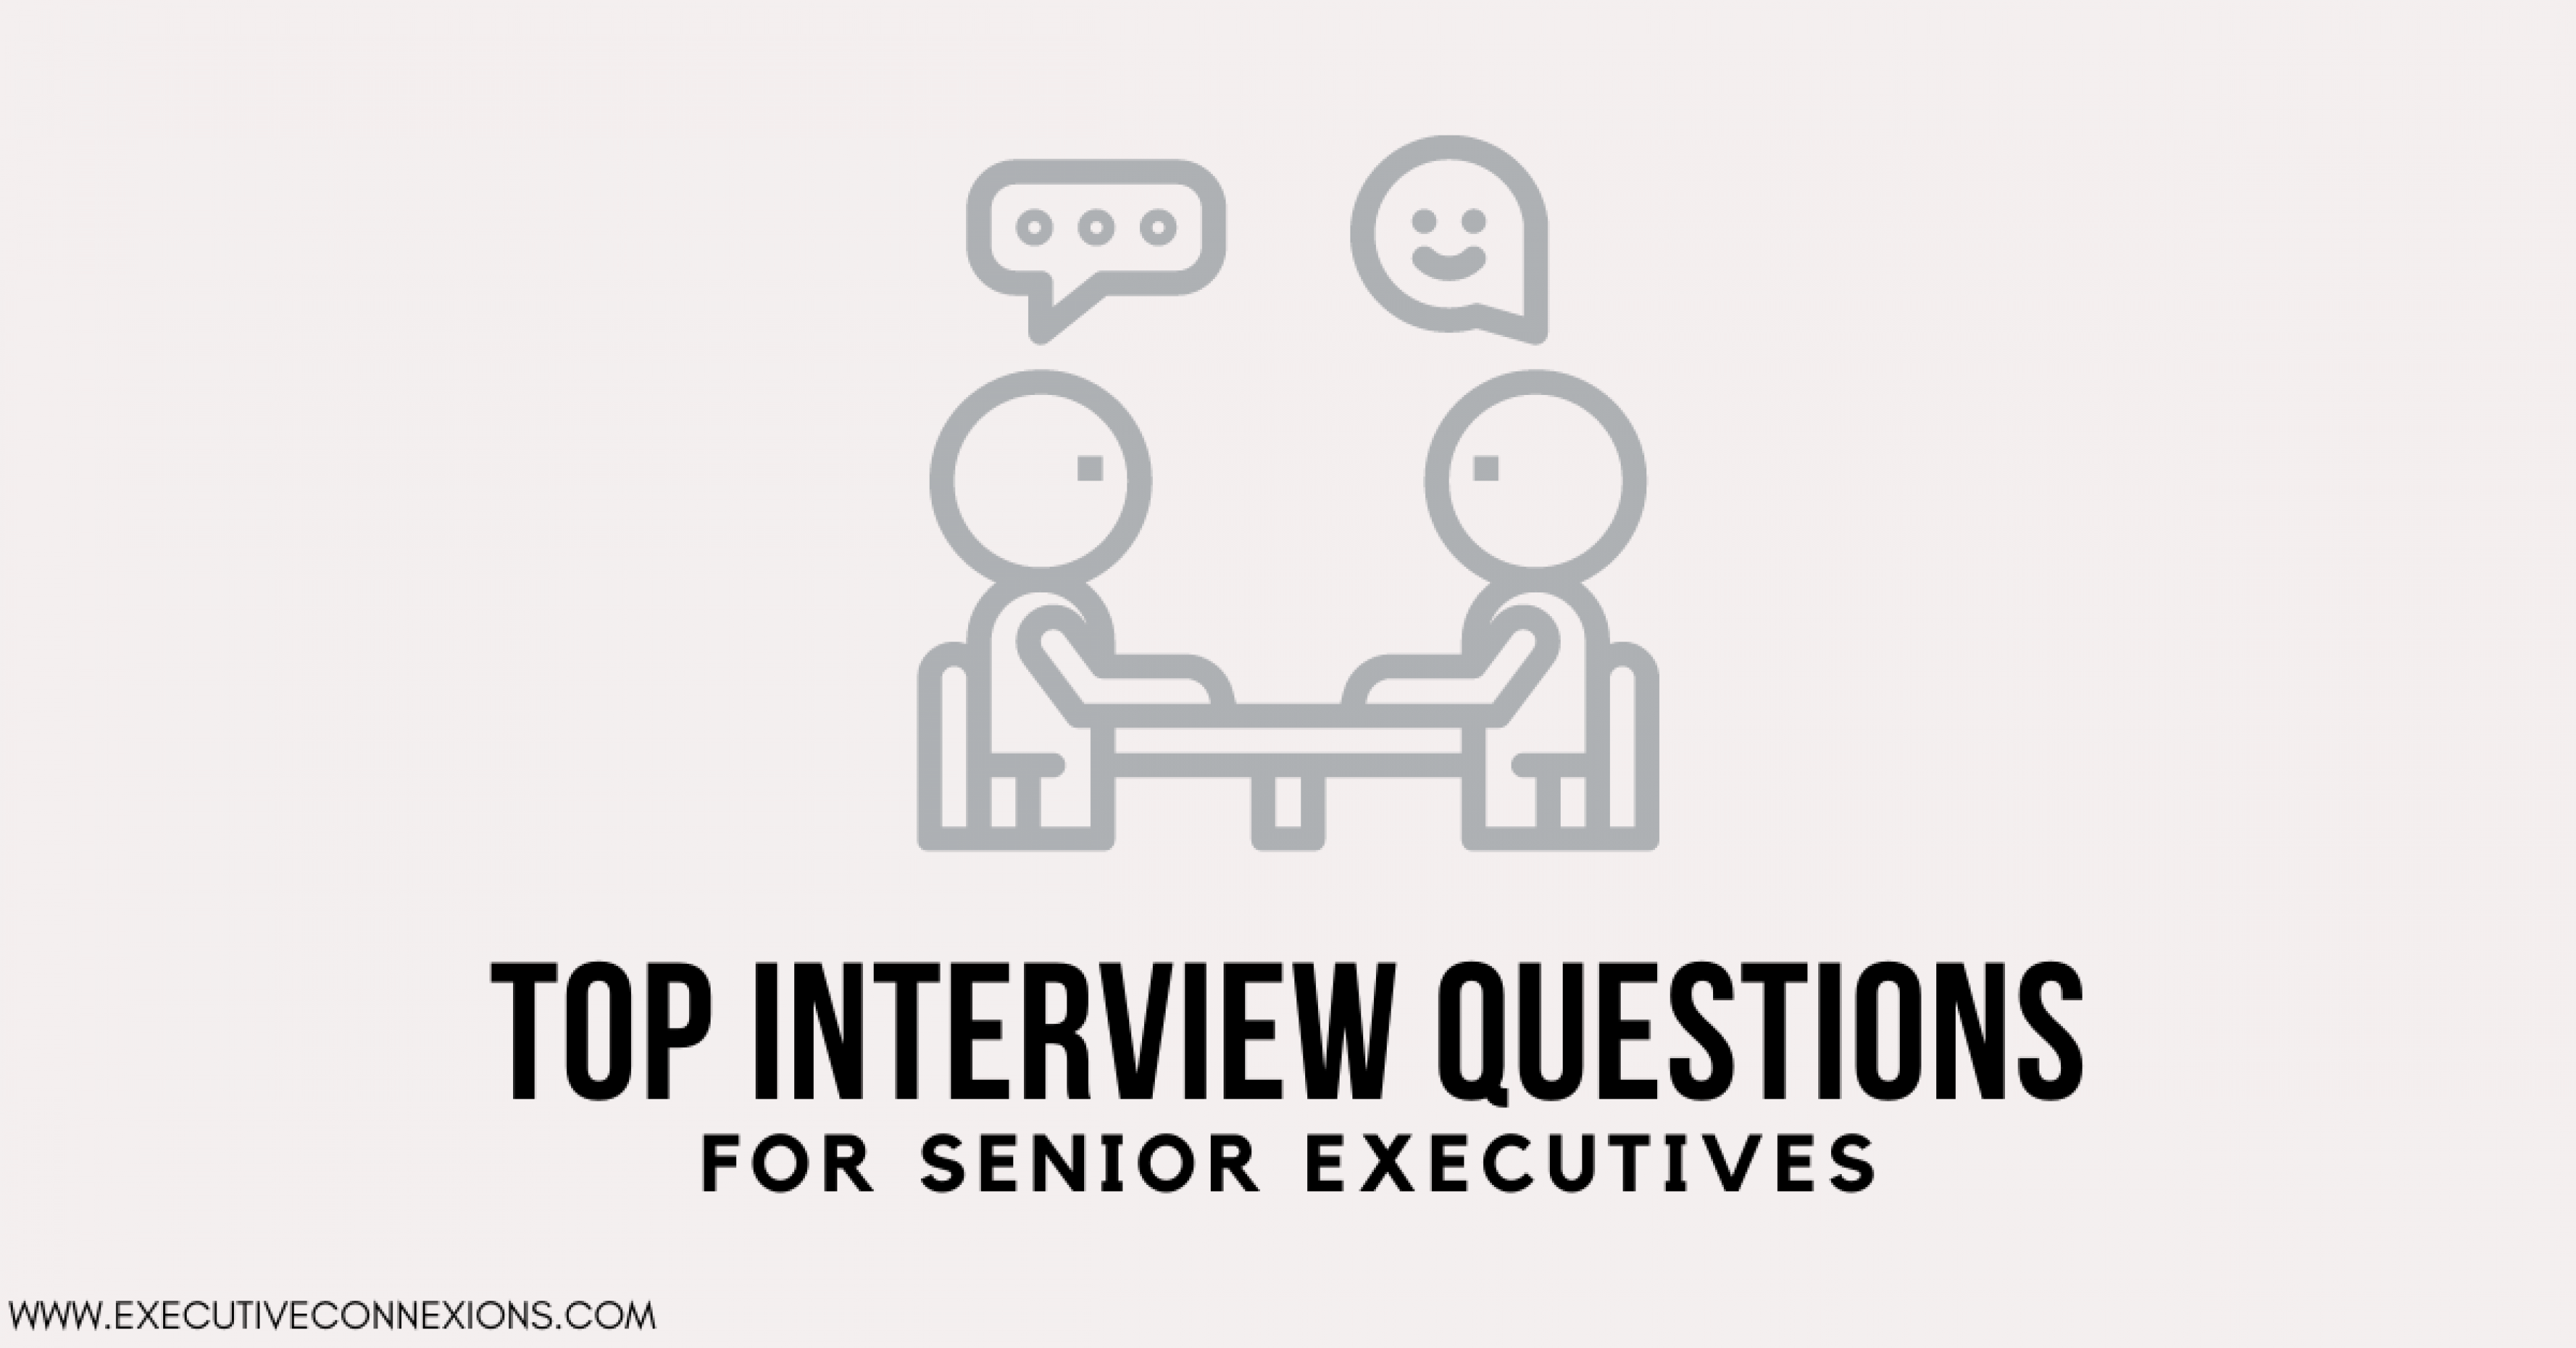 Top interview questions for senior executives